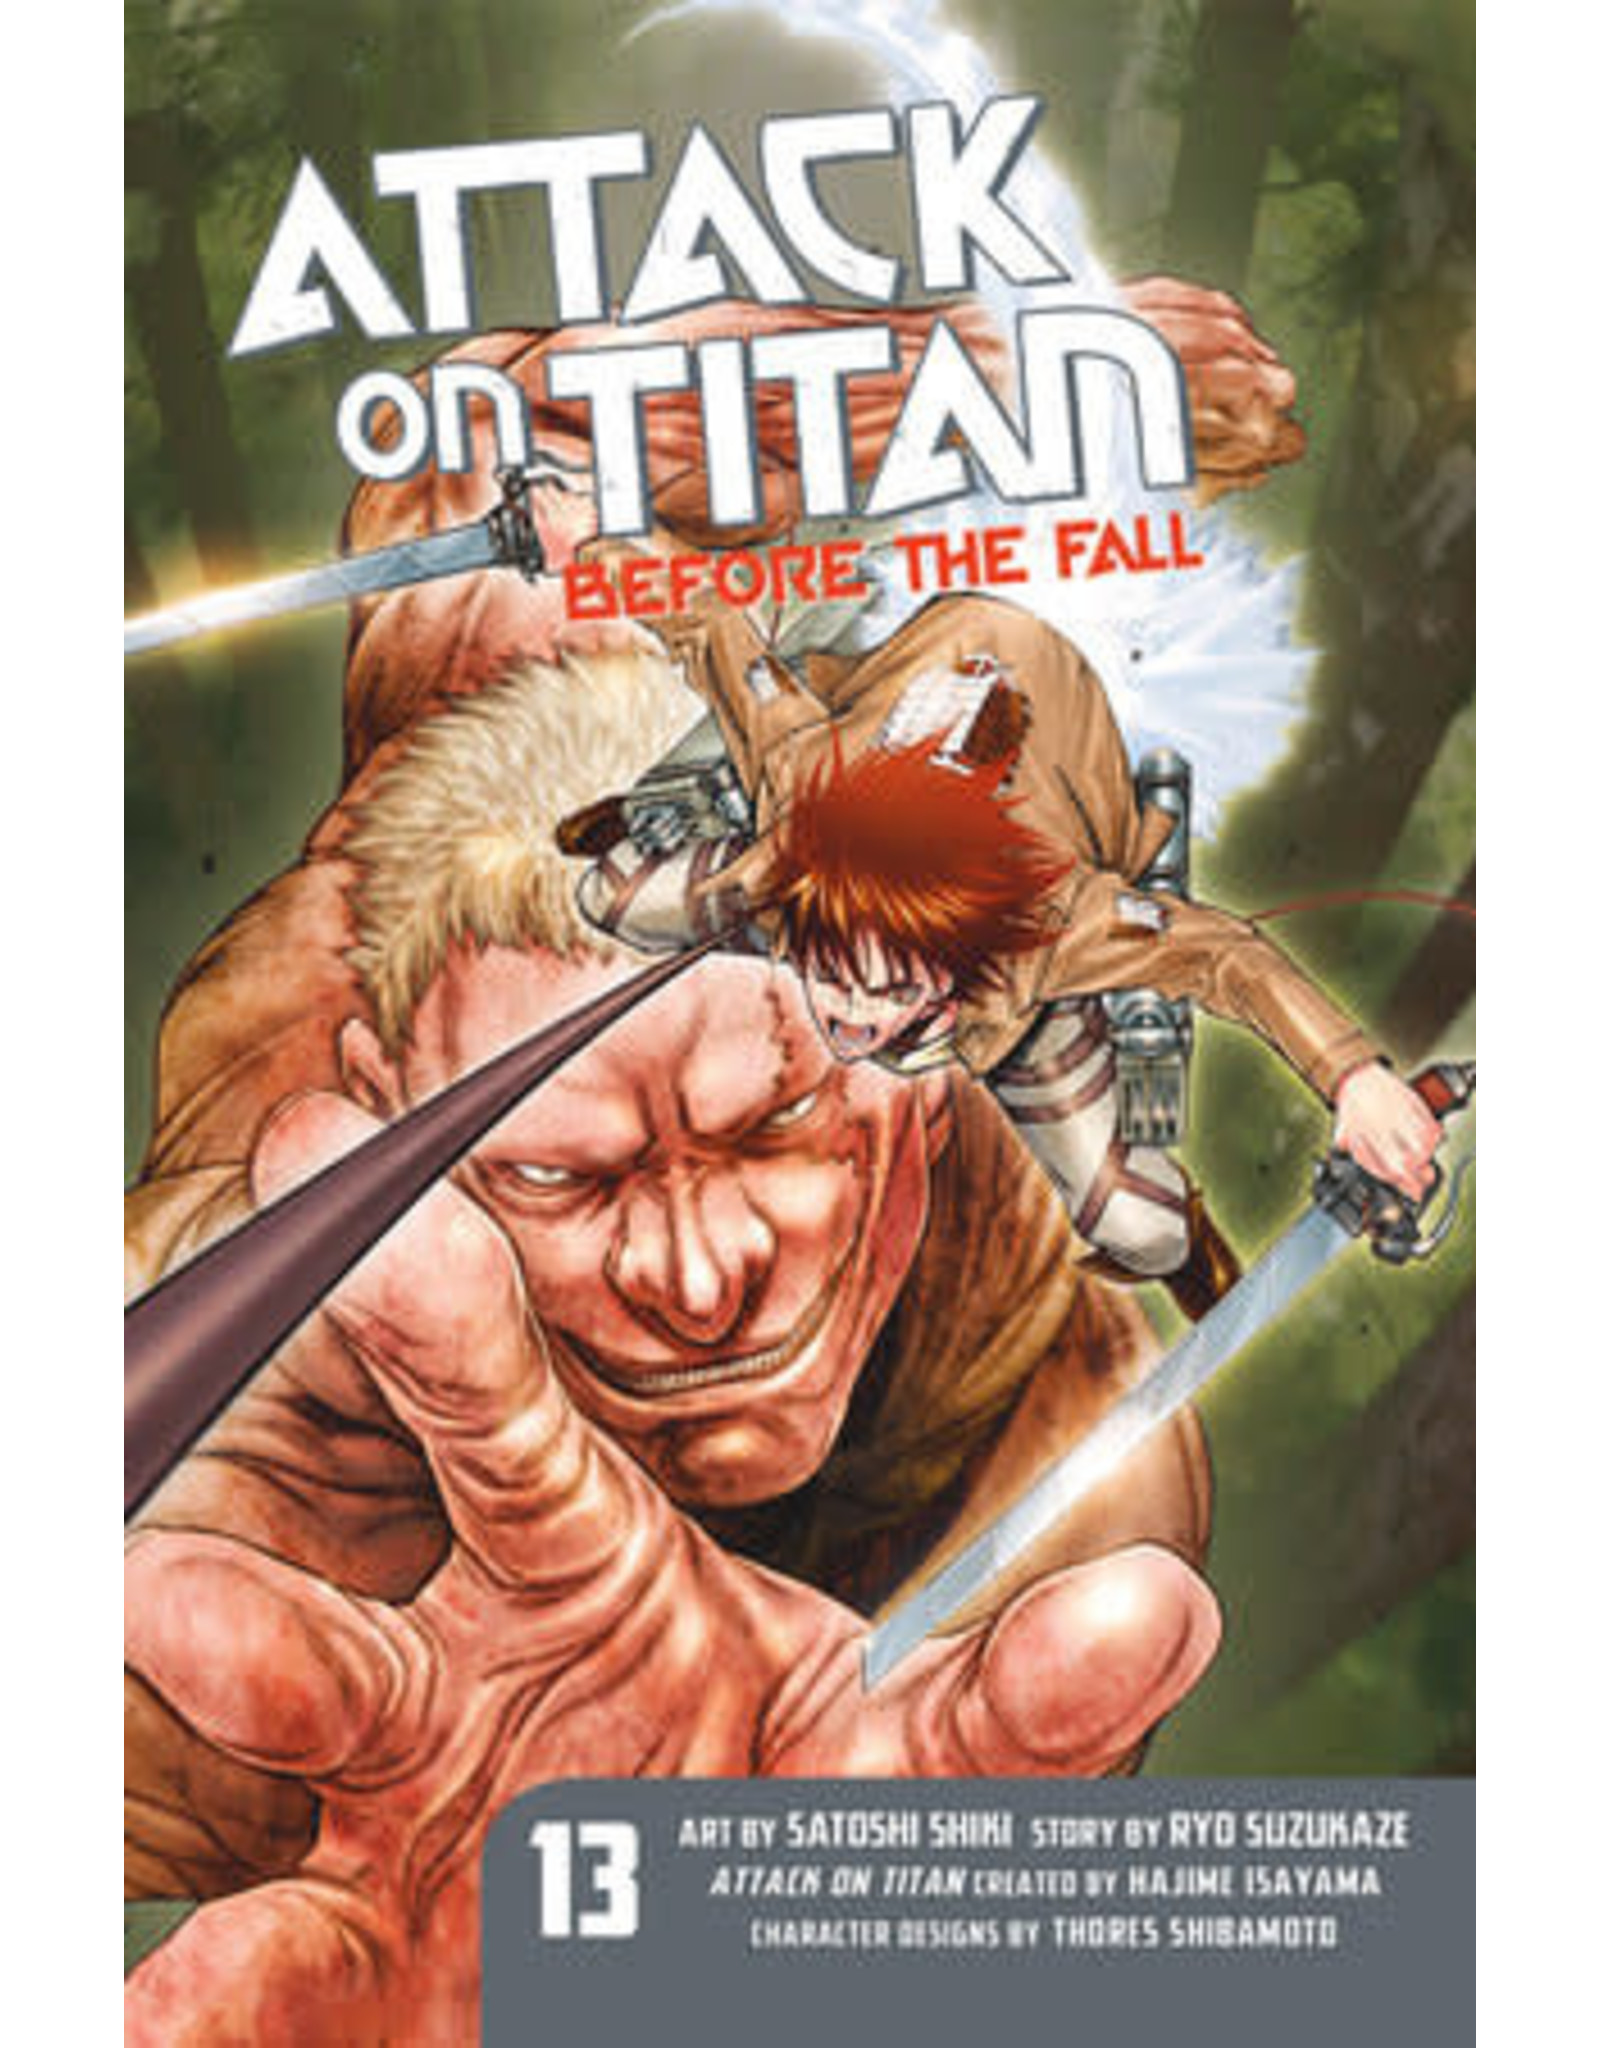 Attack on Titan: Before The Fall 13 (English)